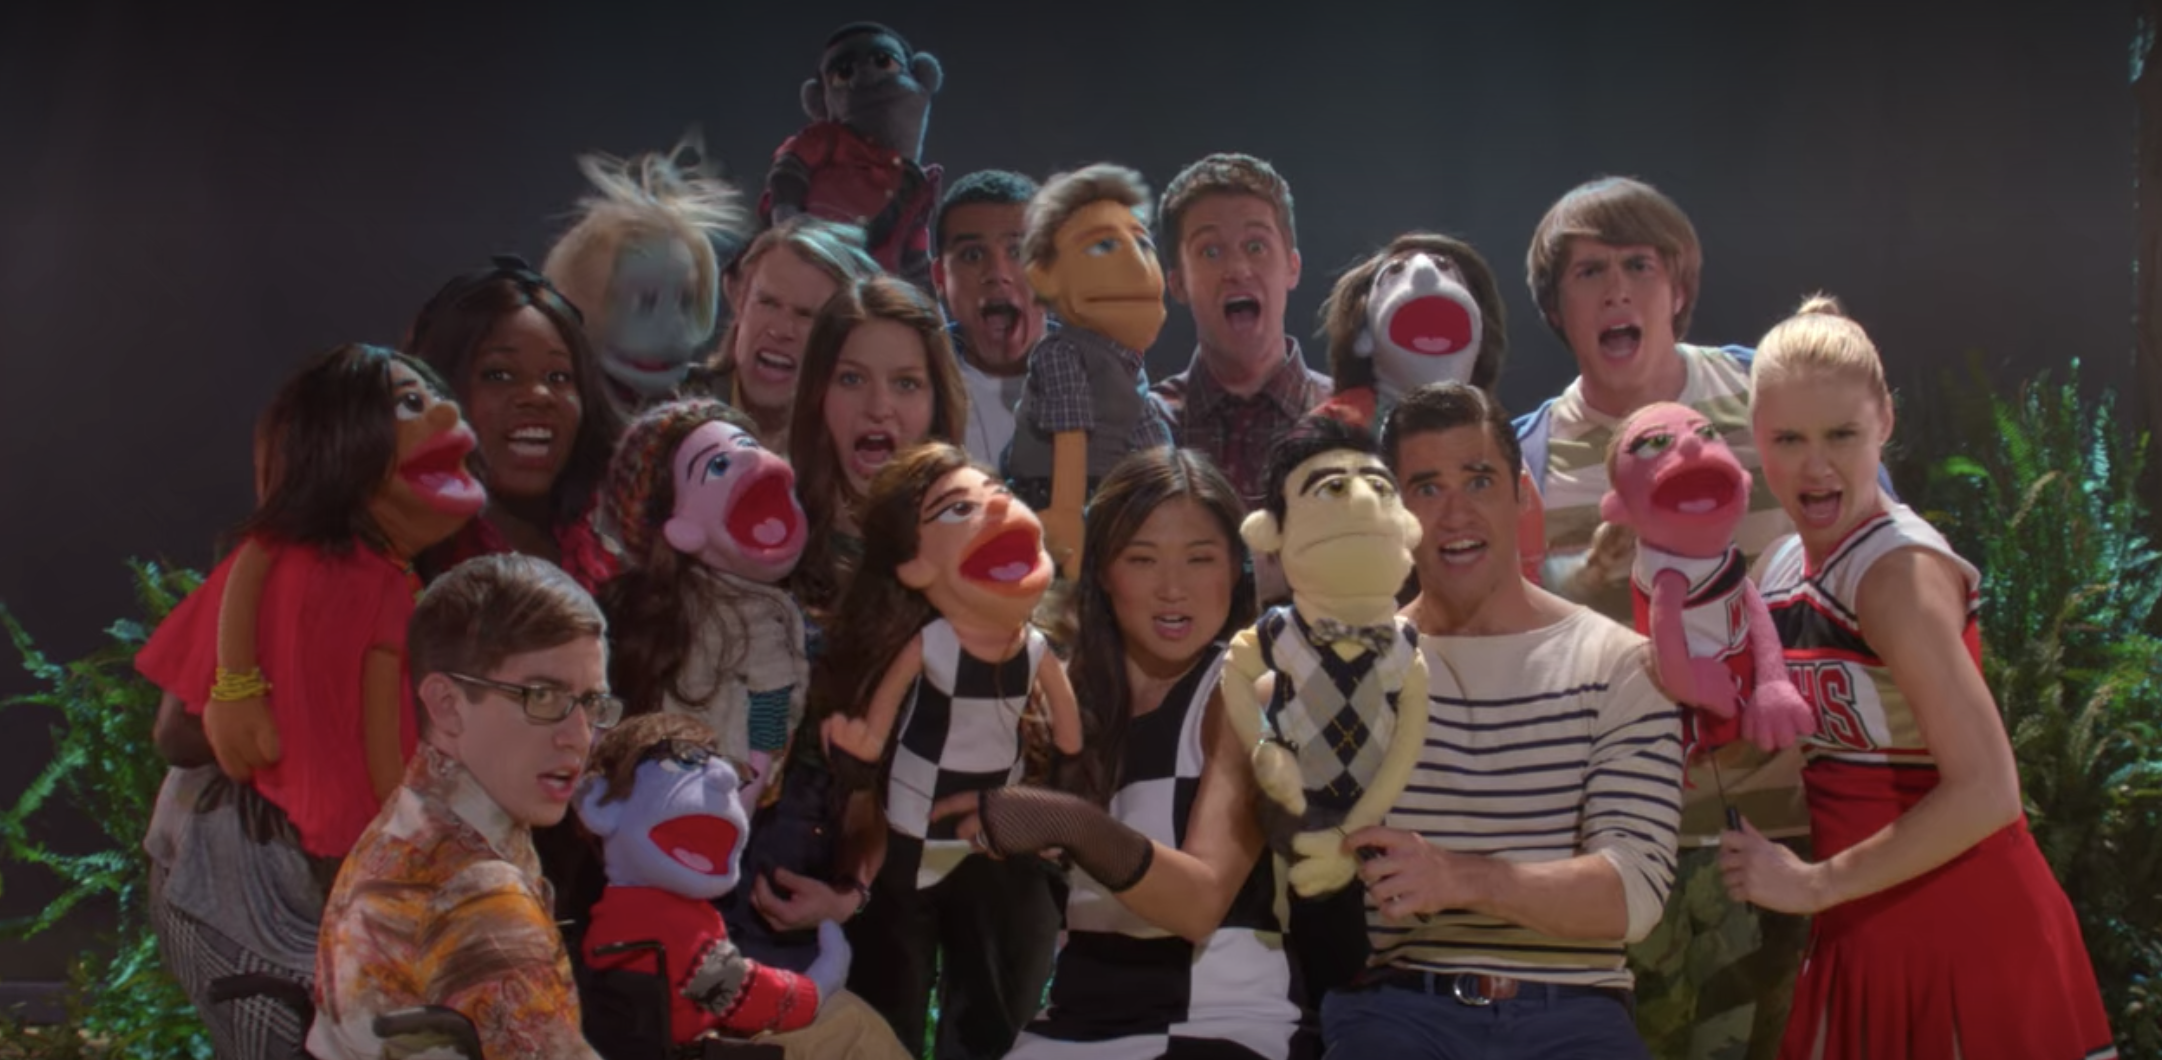 """Still of the Glee cast performing """"What Does the Fox Say?"""" on Season 5 Episode 7 of the show"""